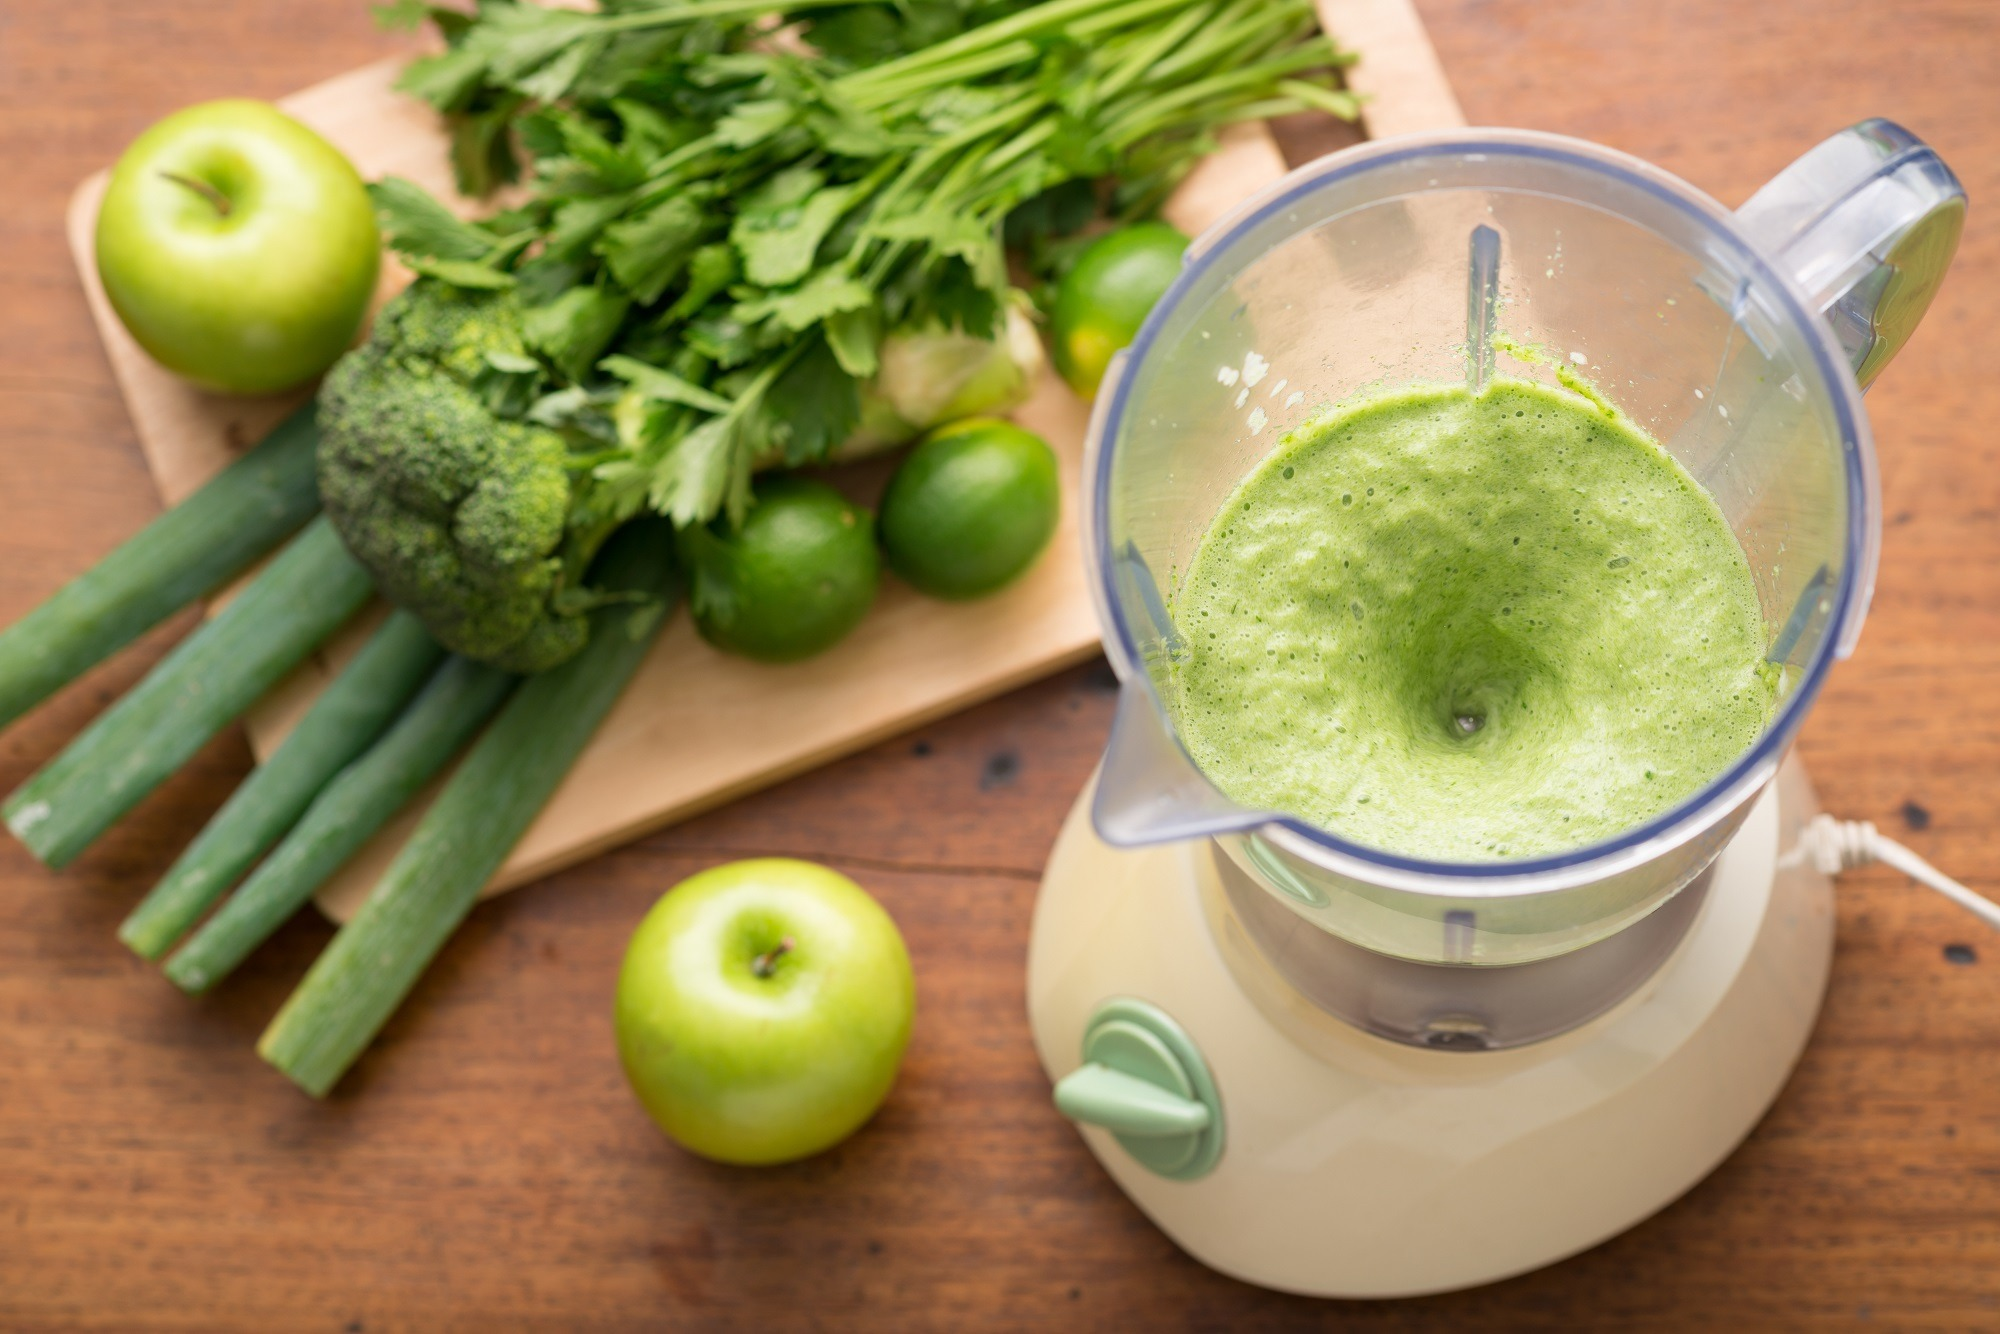 Blender with green fruits and vegetables